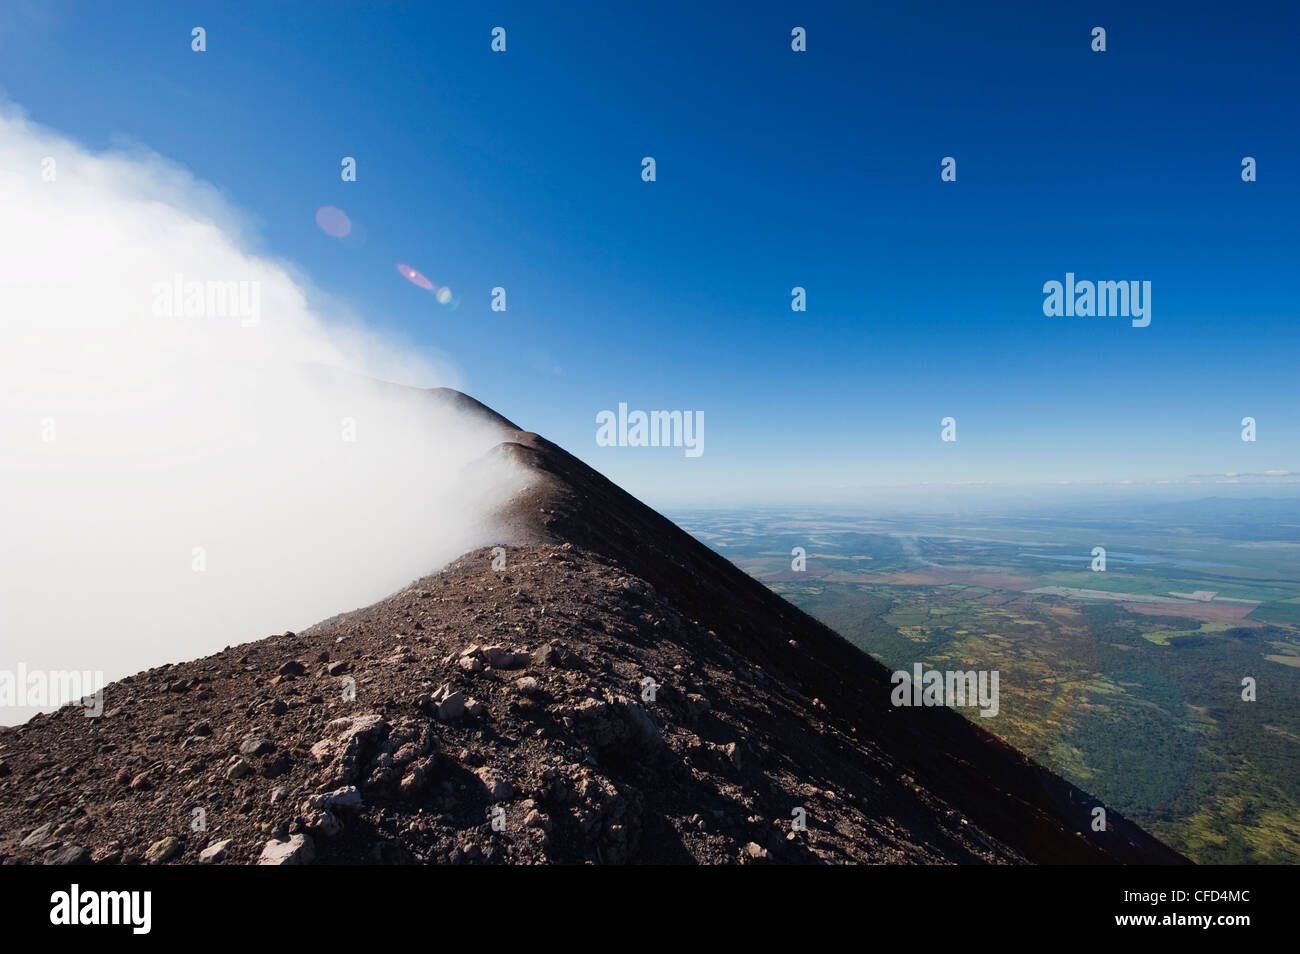 Steaming crater of Volcan de San Cristobal, 1745m, Nicaragua, Central America - Stock Image